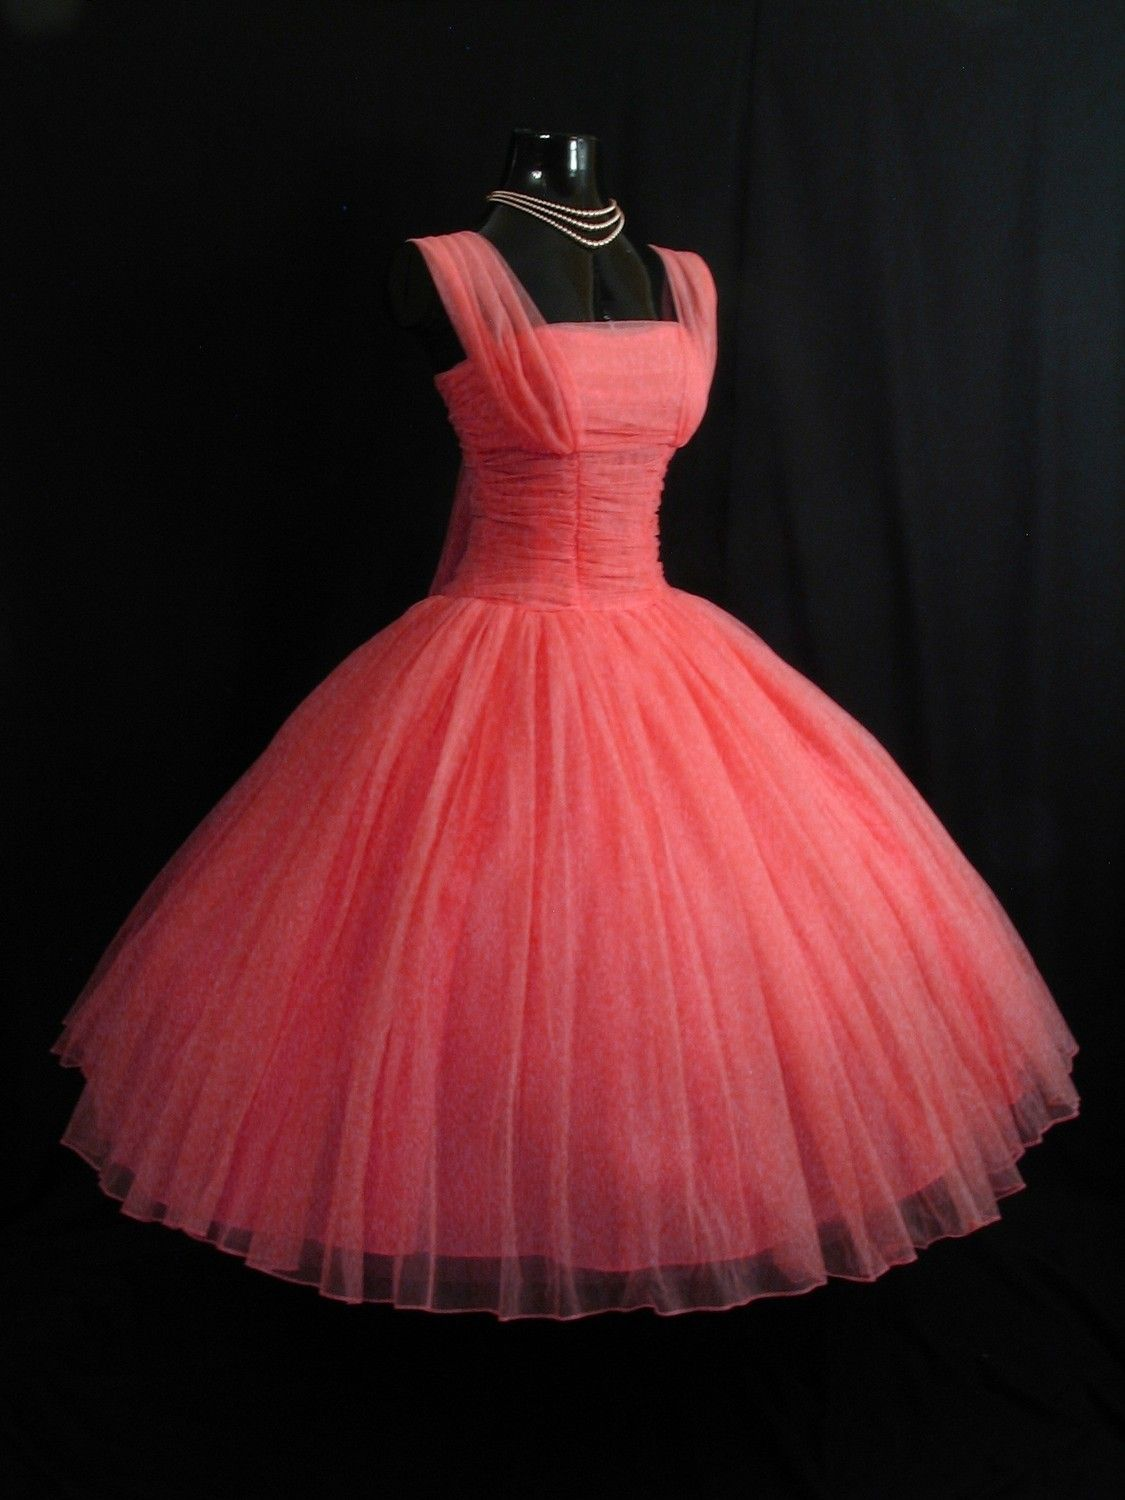 Vintage 50's 1950's Party Prom Dress. Prom dresses